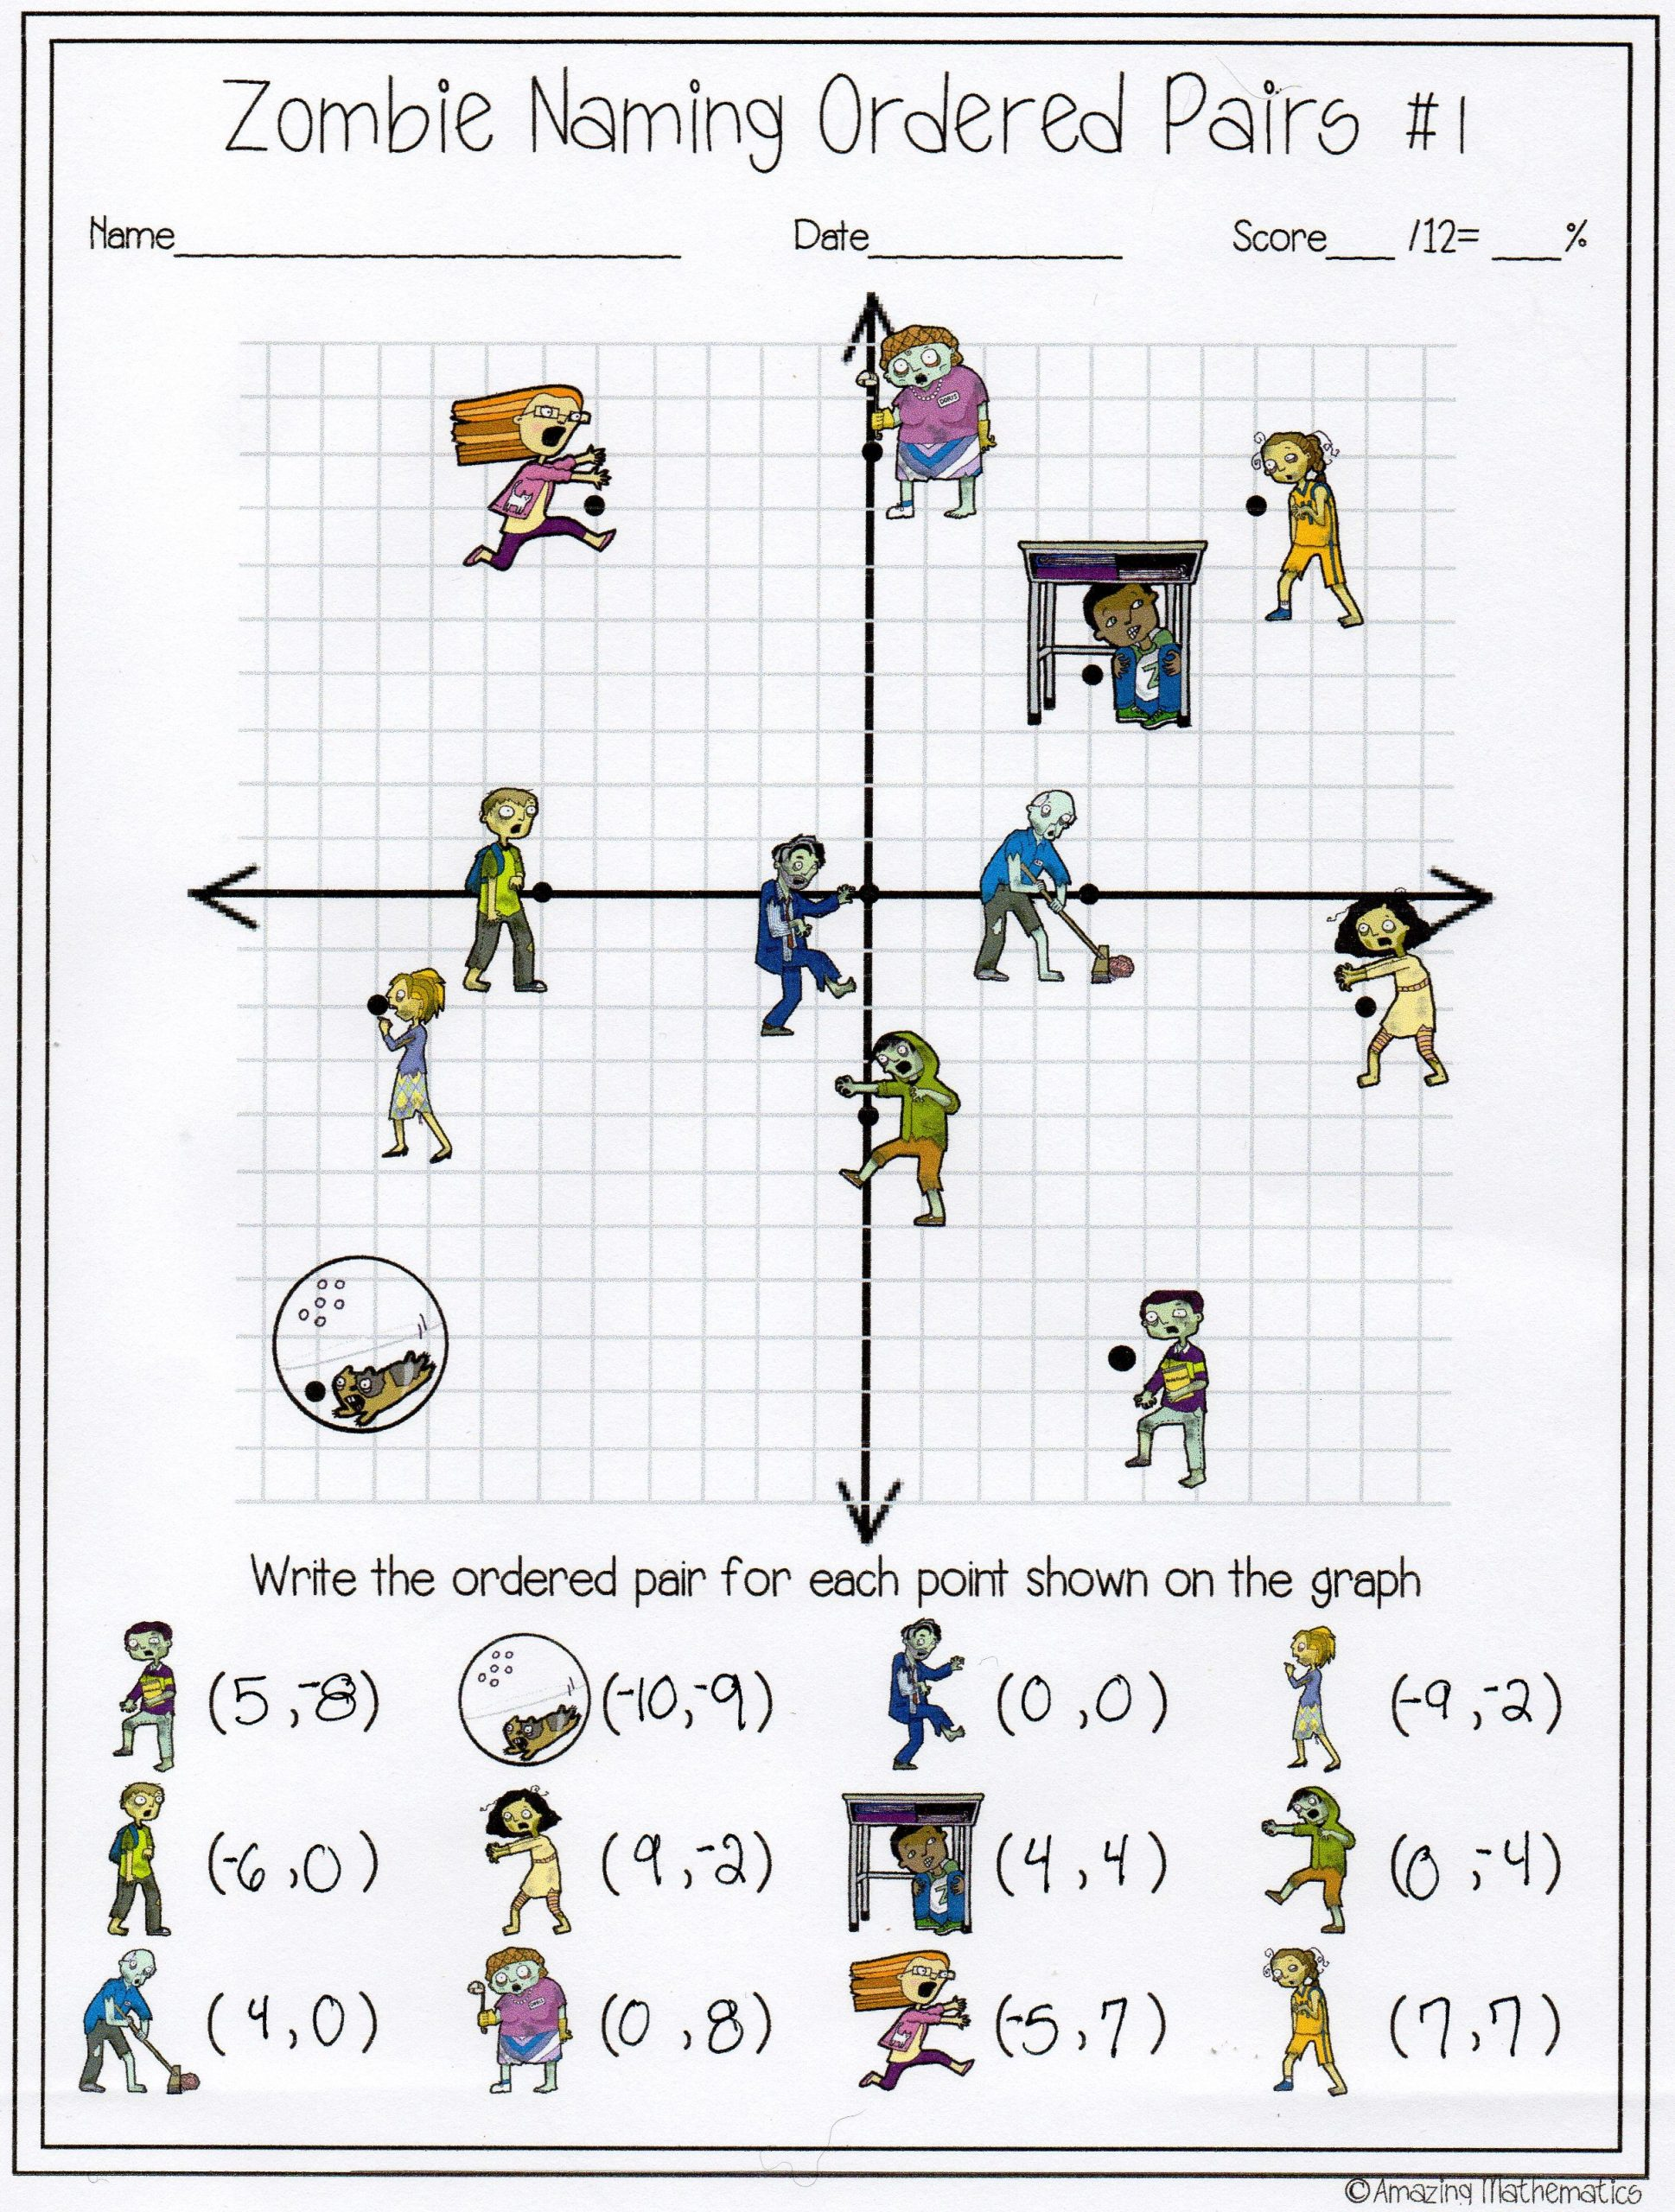 Ordered Pairs Worksheet 5th Grade Zombie Naming ordered Pairs Worksheet